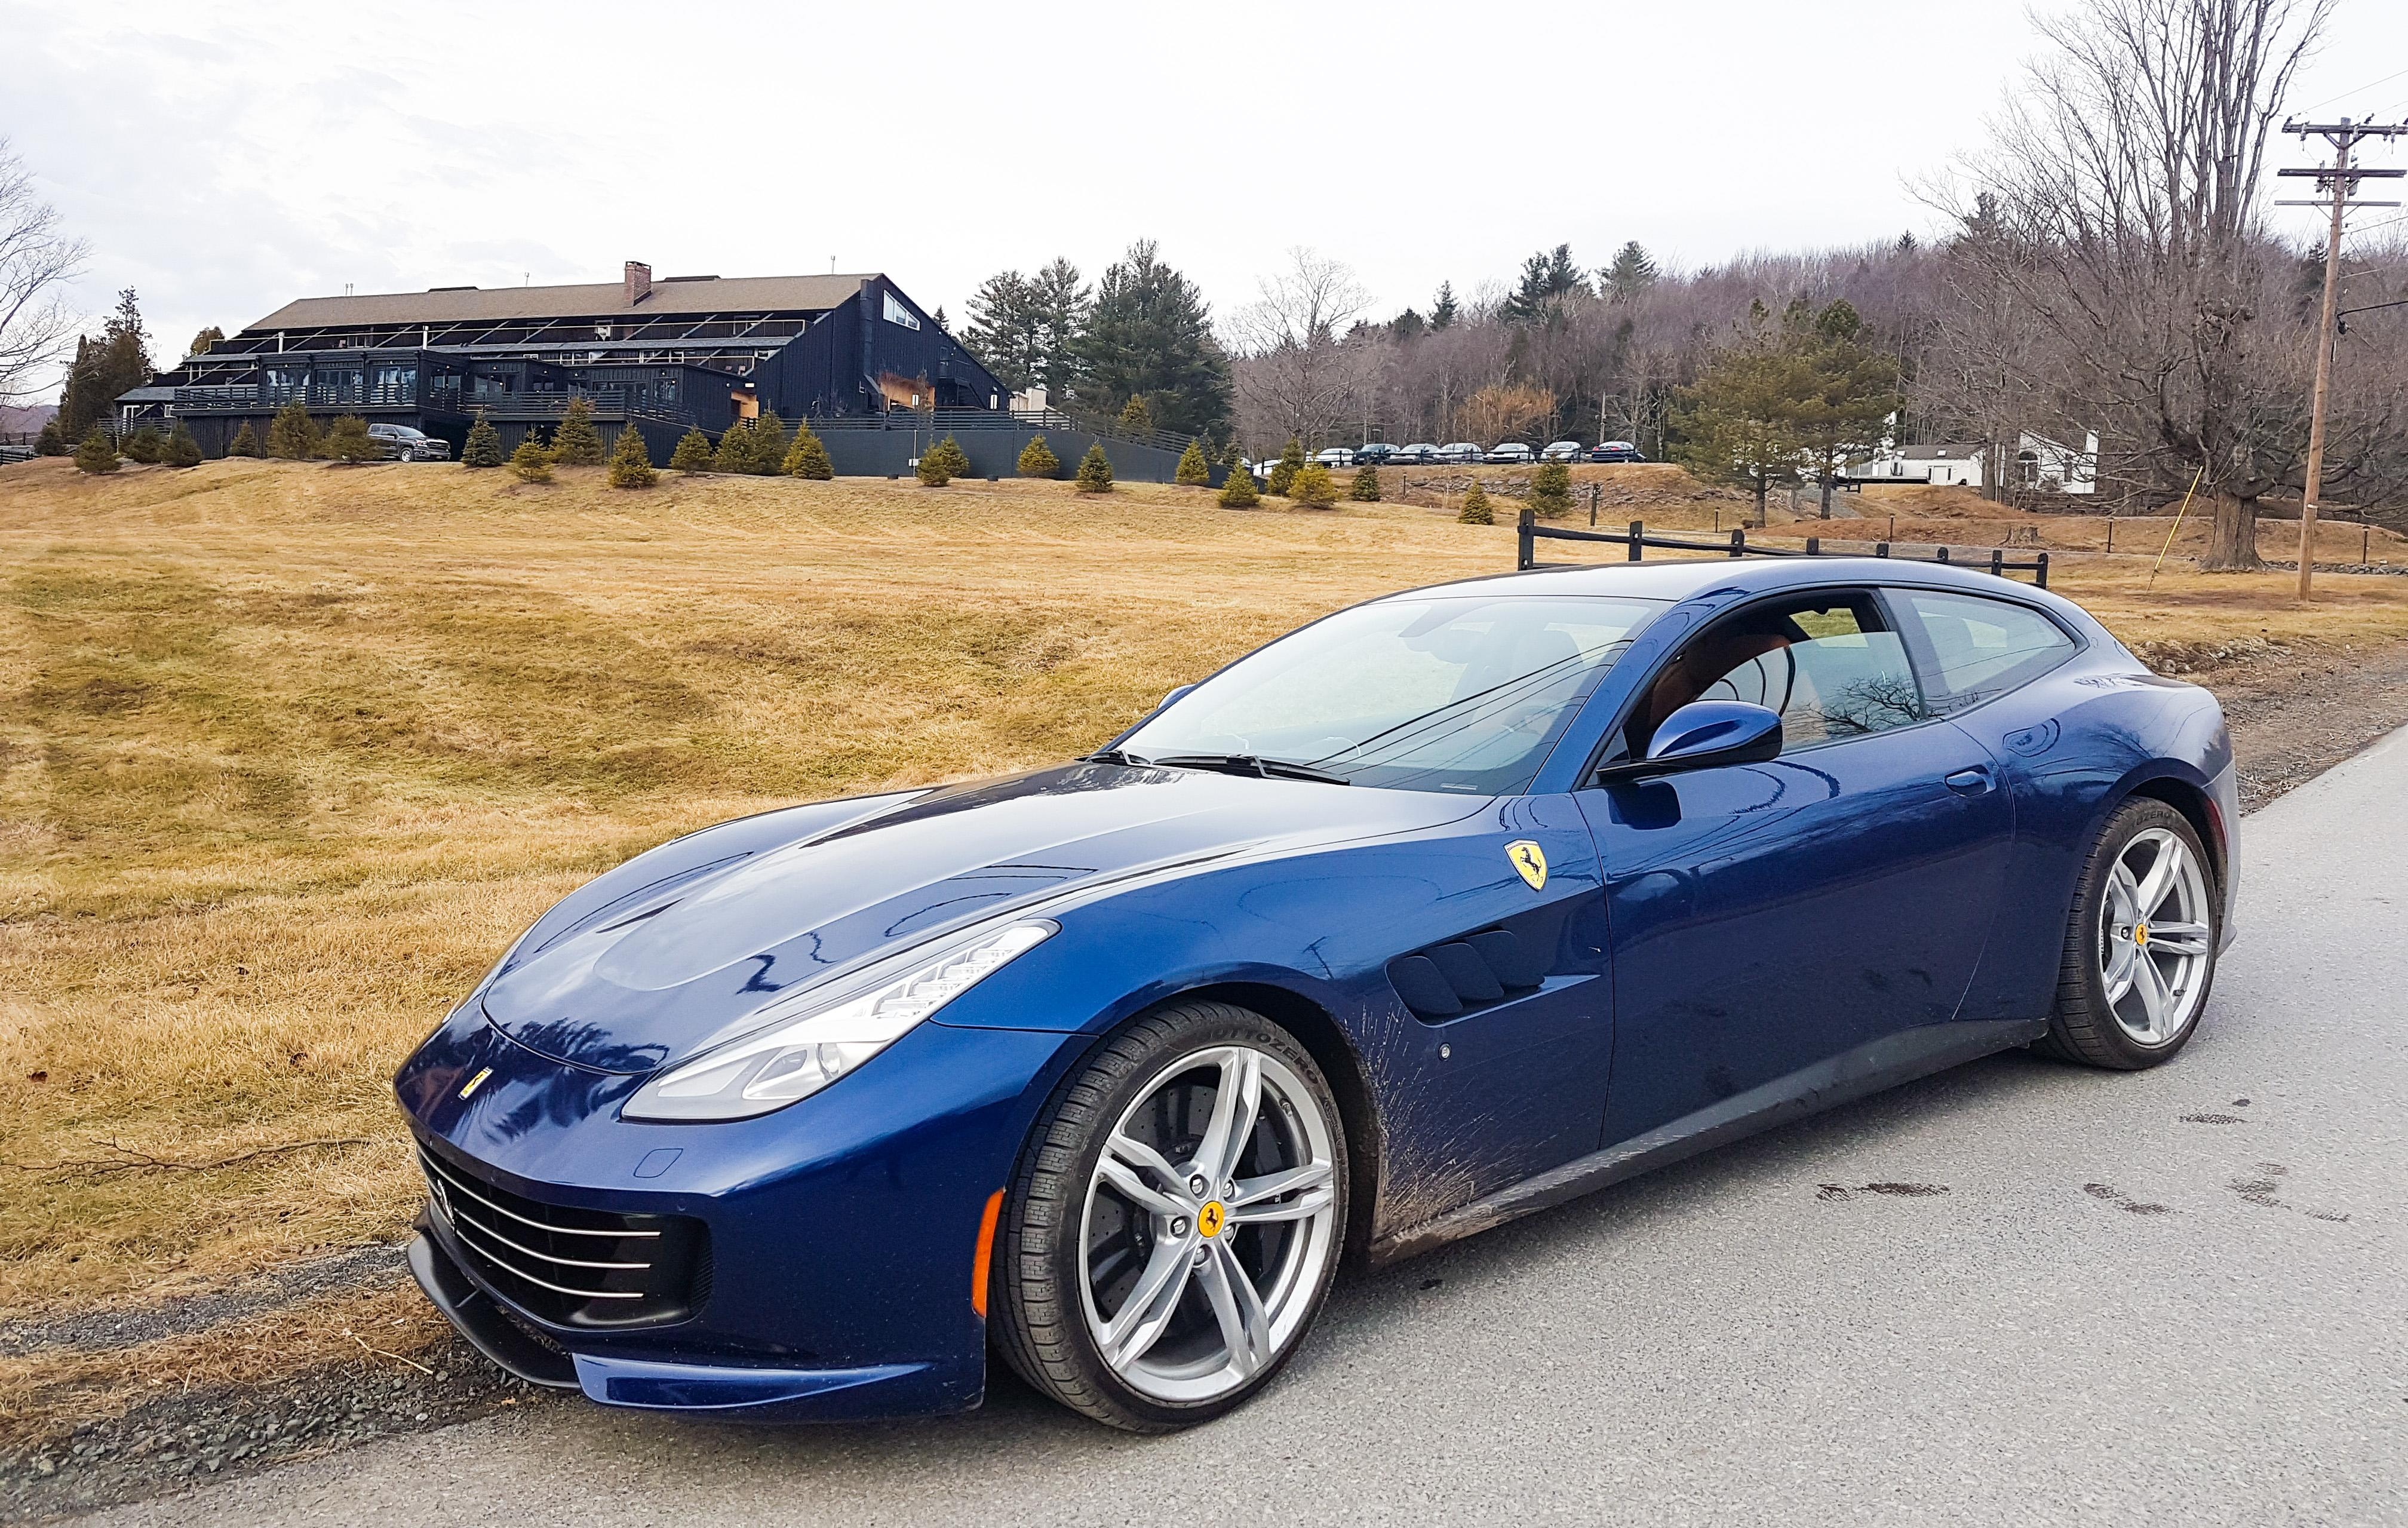 Winter Olympics Italian style taking the GTC4Lusso upstate Video